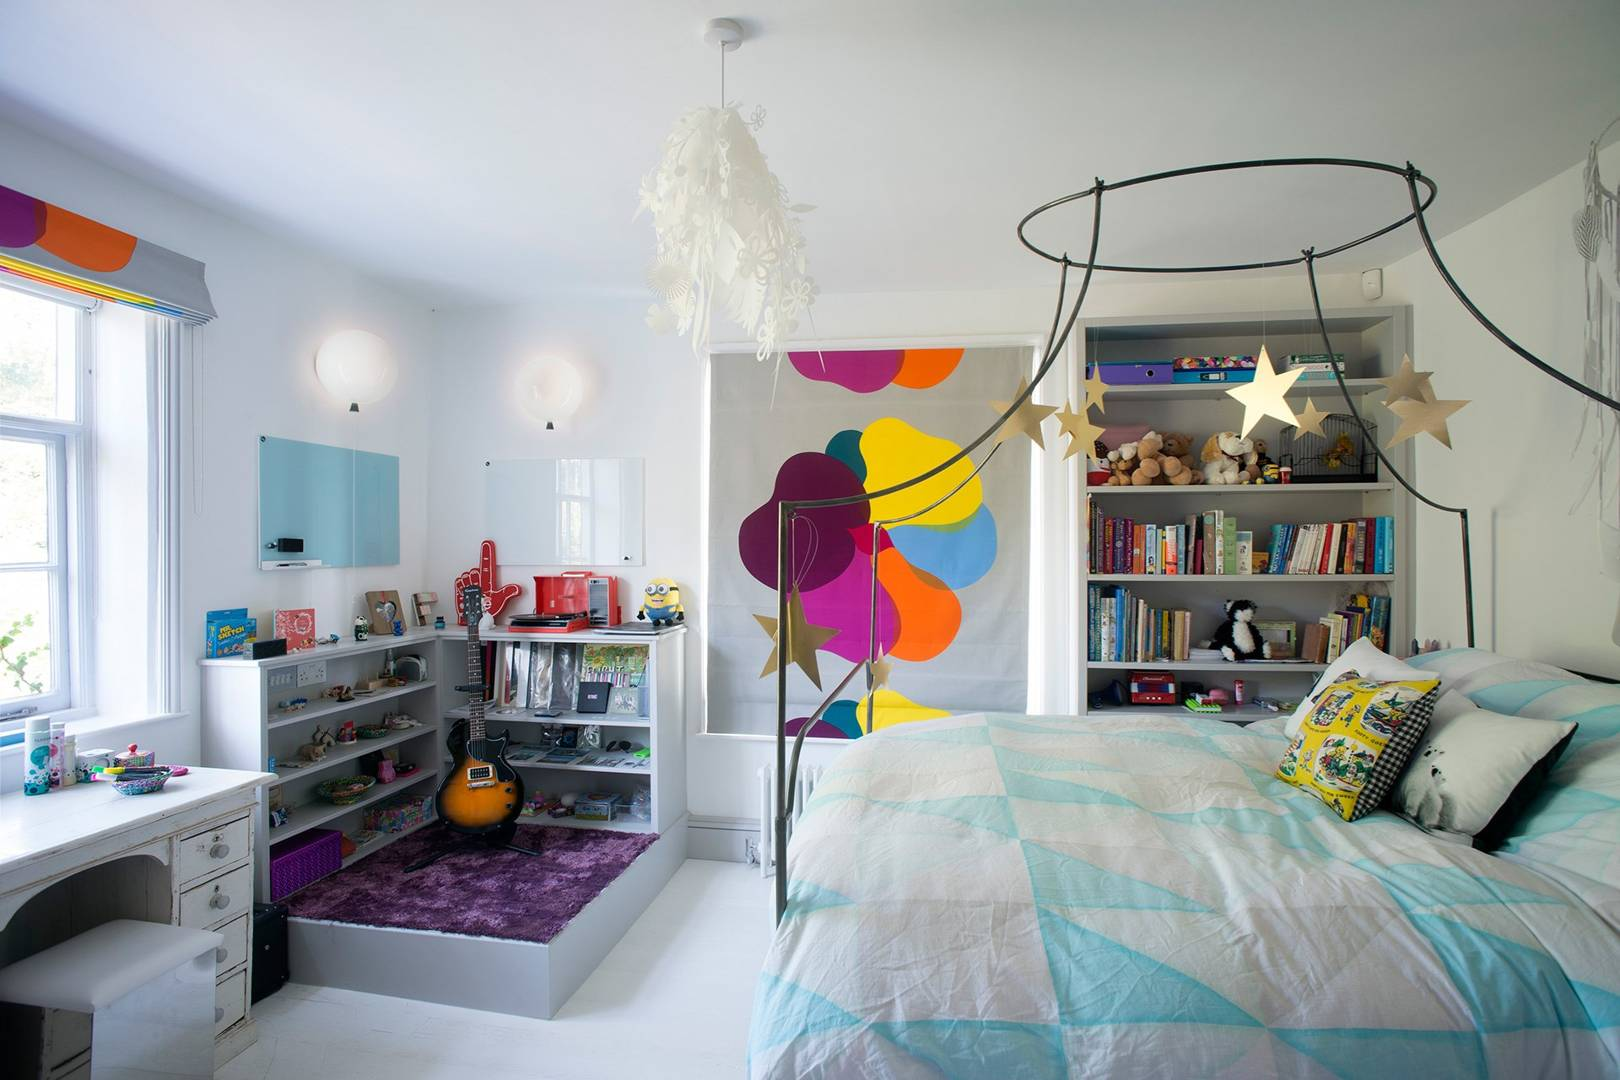 The Best Blinds & Curtains For Children's Bedrooms